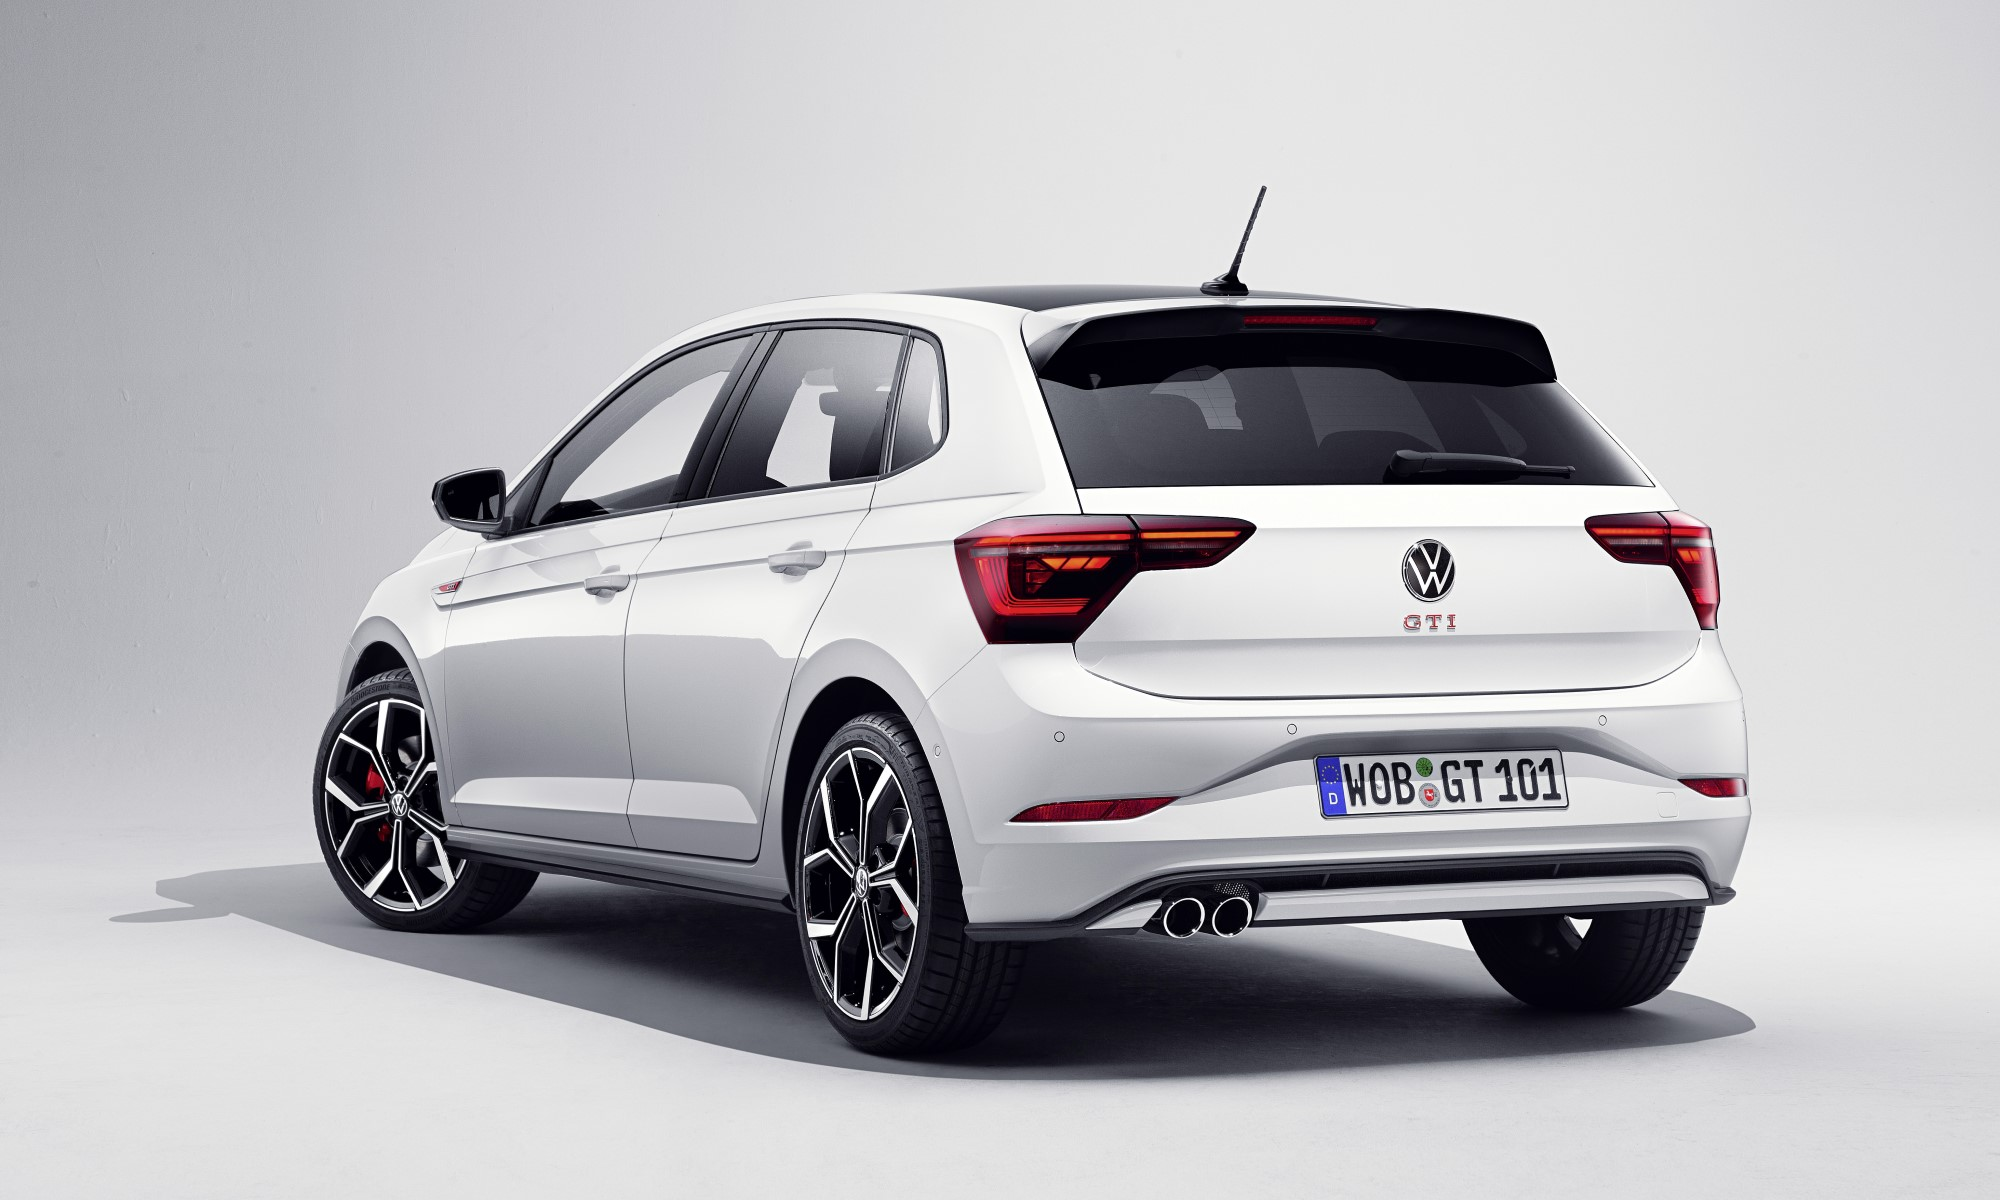 Refreshed VW Polo GTI rear